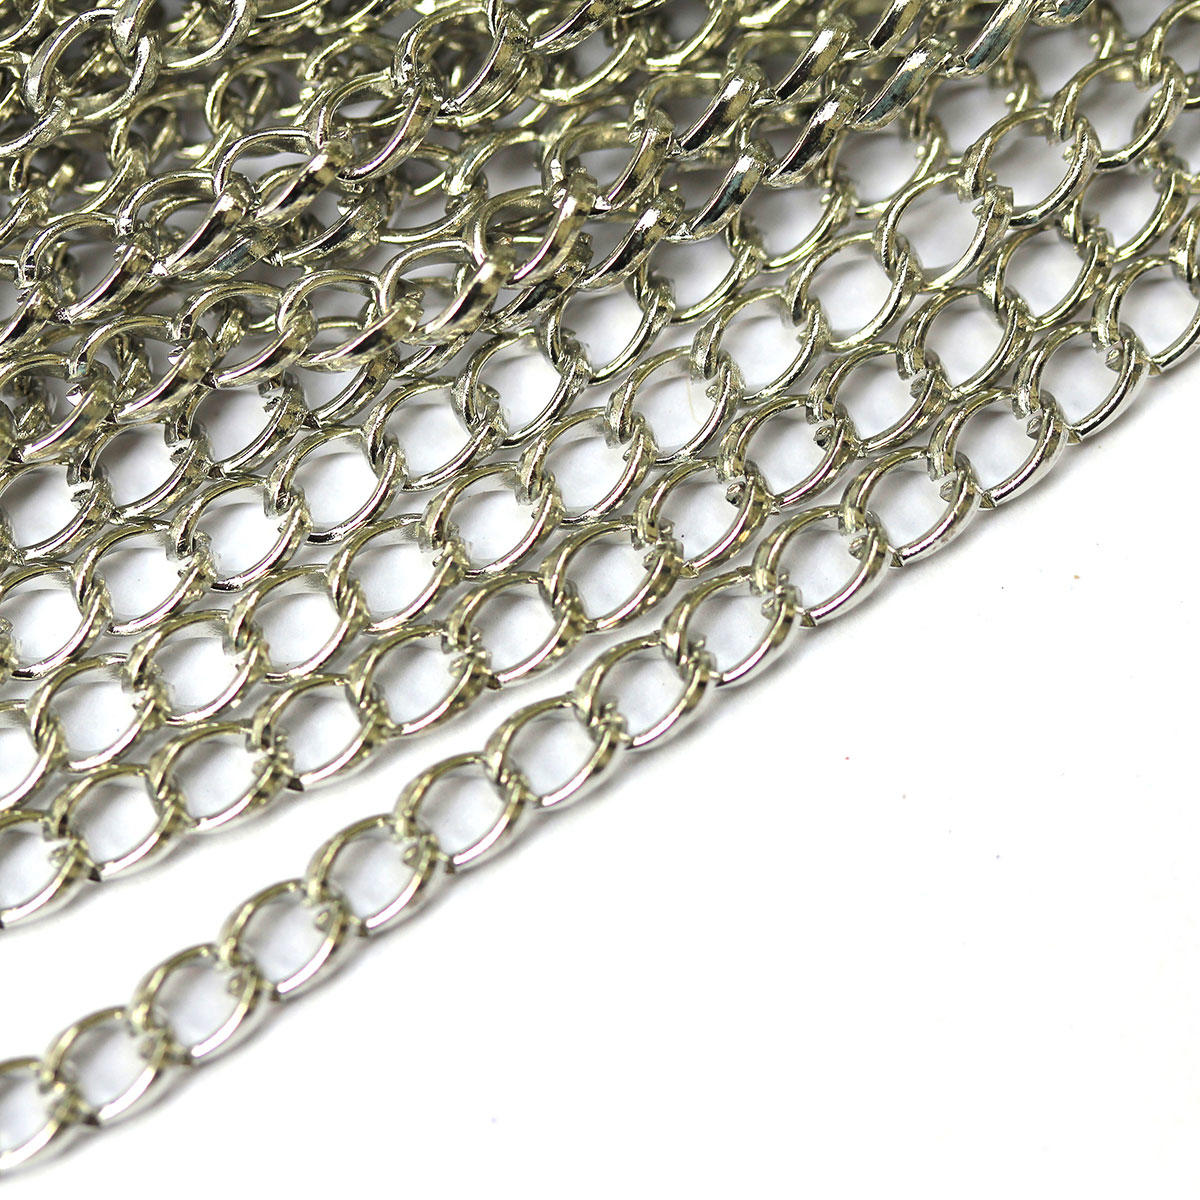 Antique Silver Extender Chain